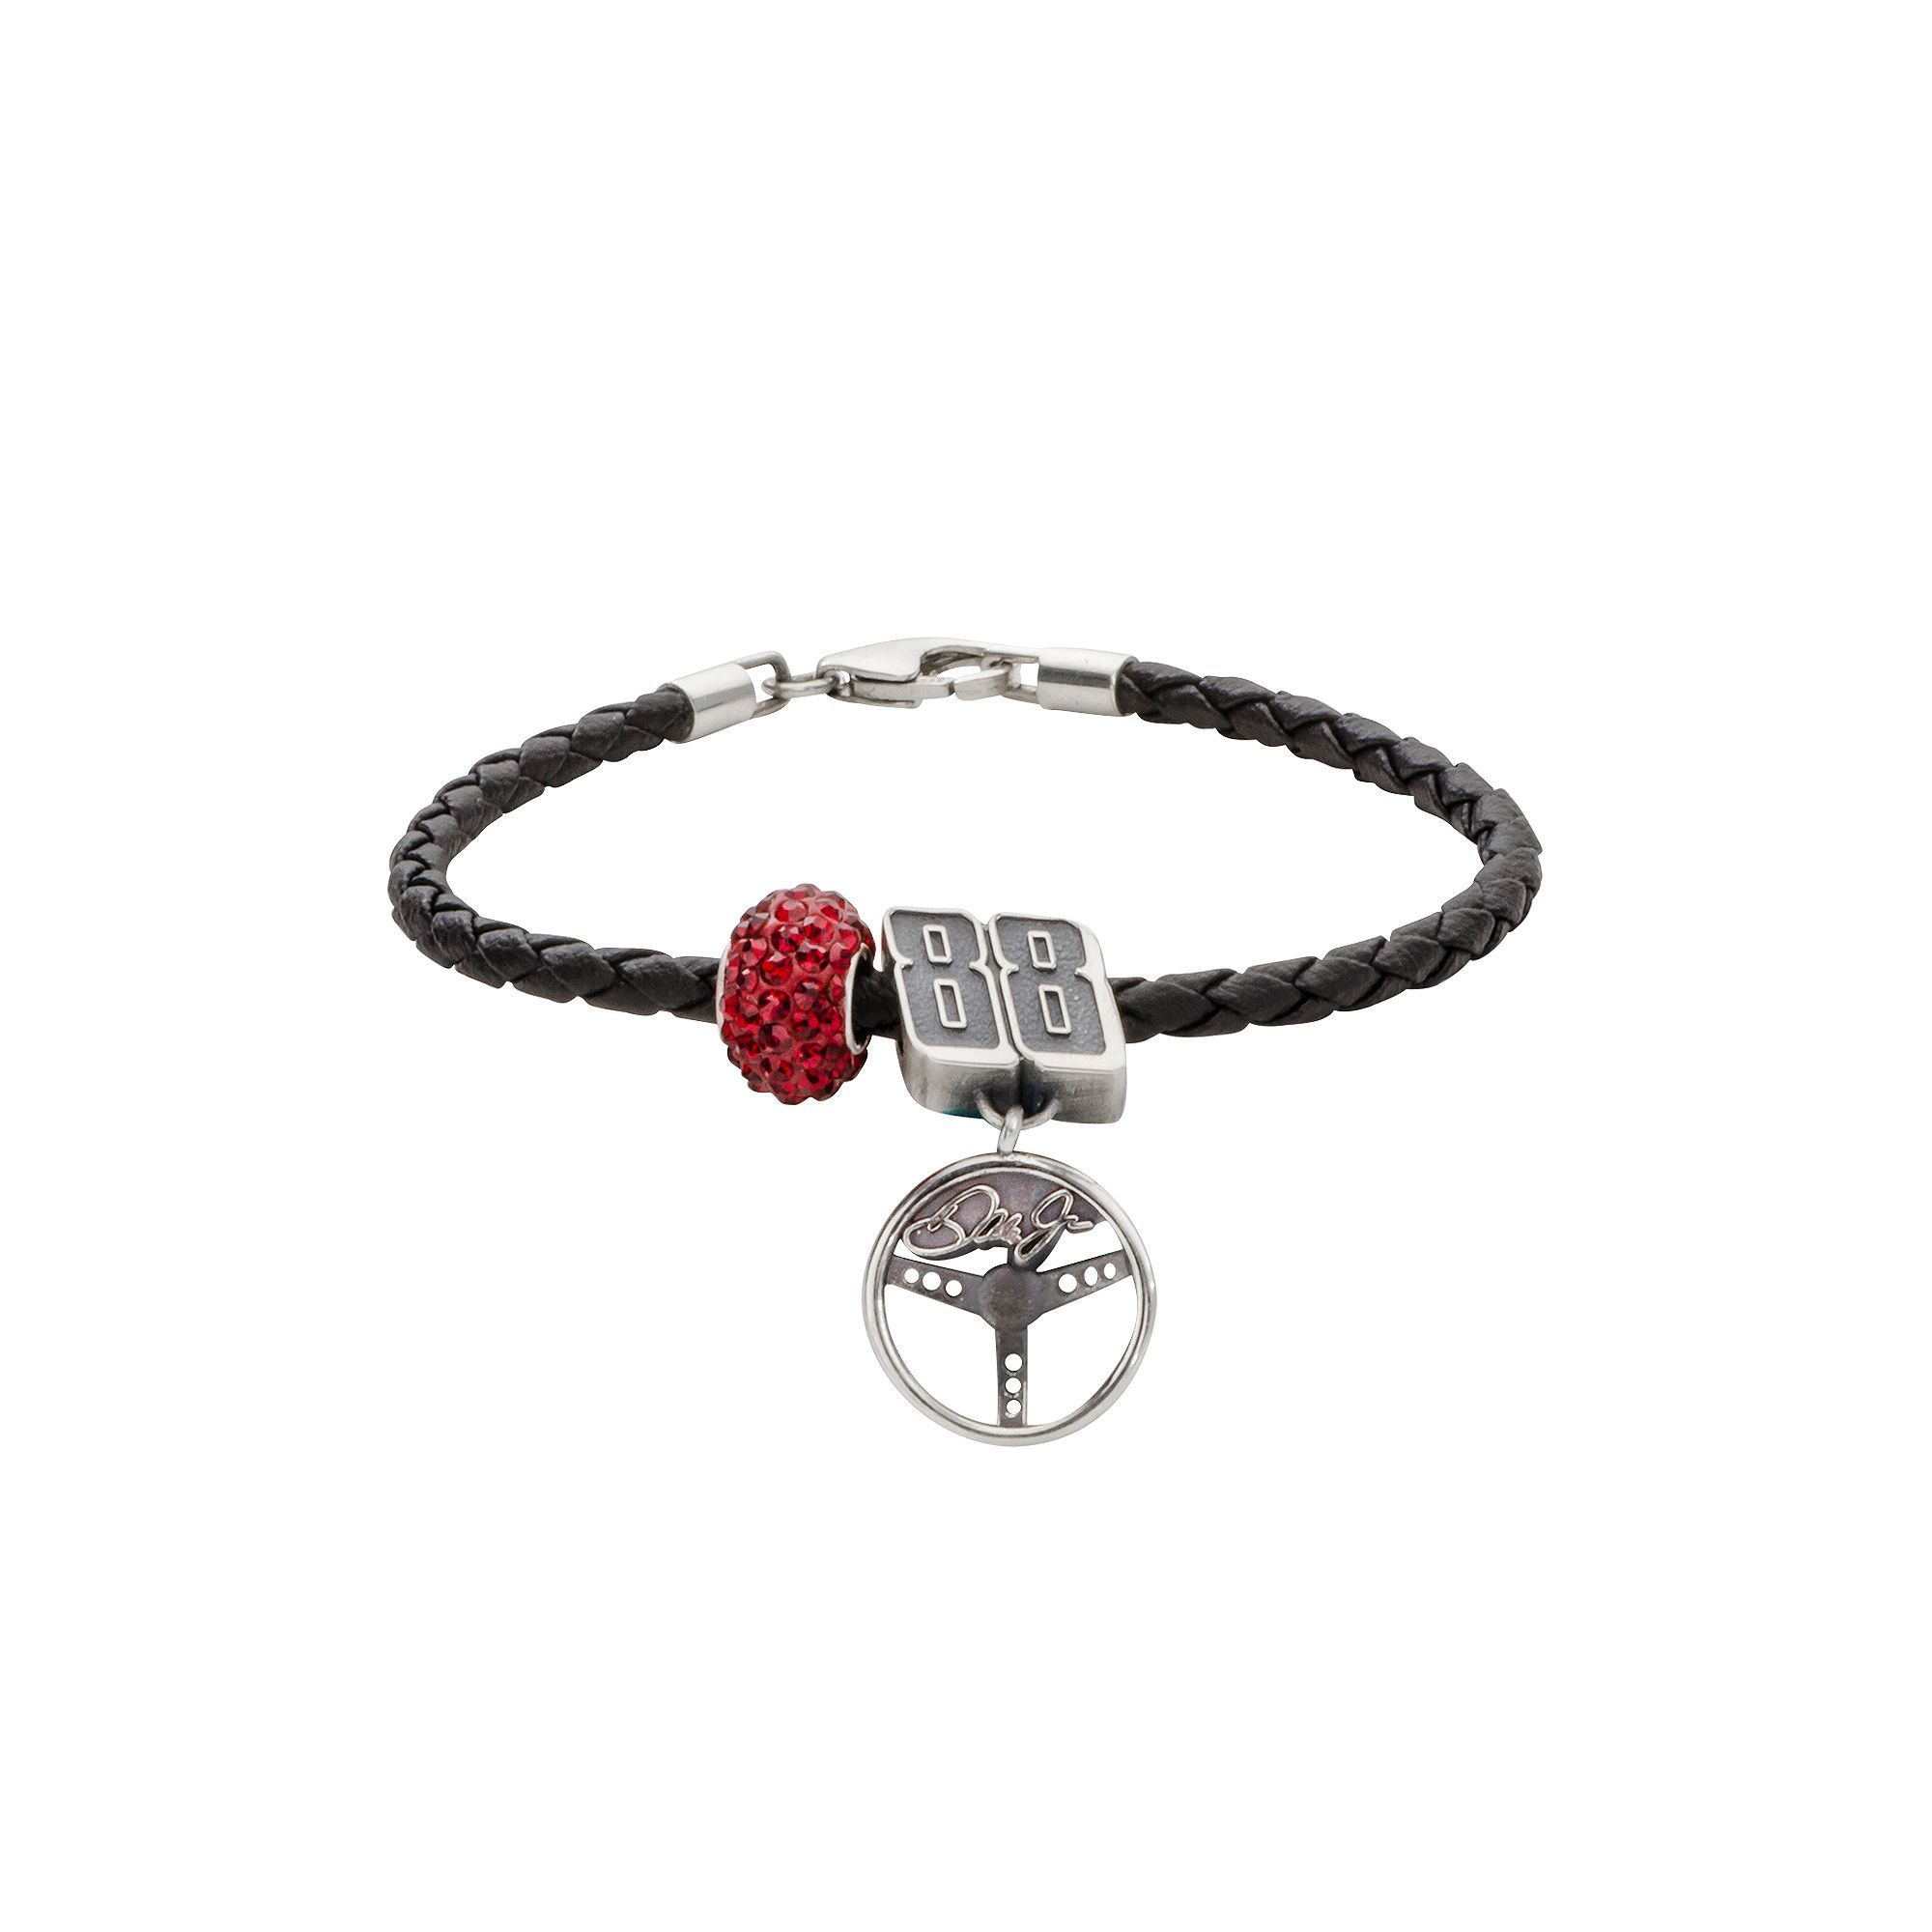 "Insignia Collection Nascar Dale Earnhardt Jr. Leather Bracelet and Sterling Silver Crystal 88 Steering Wheel Charm and Bead Set, Women's, Size: 7.5"", Red"